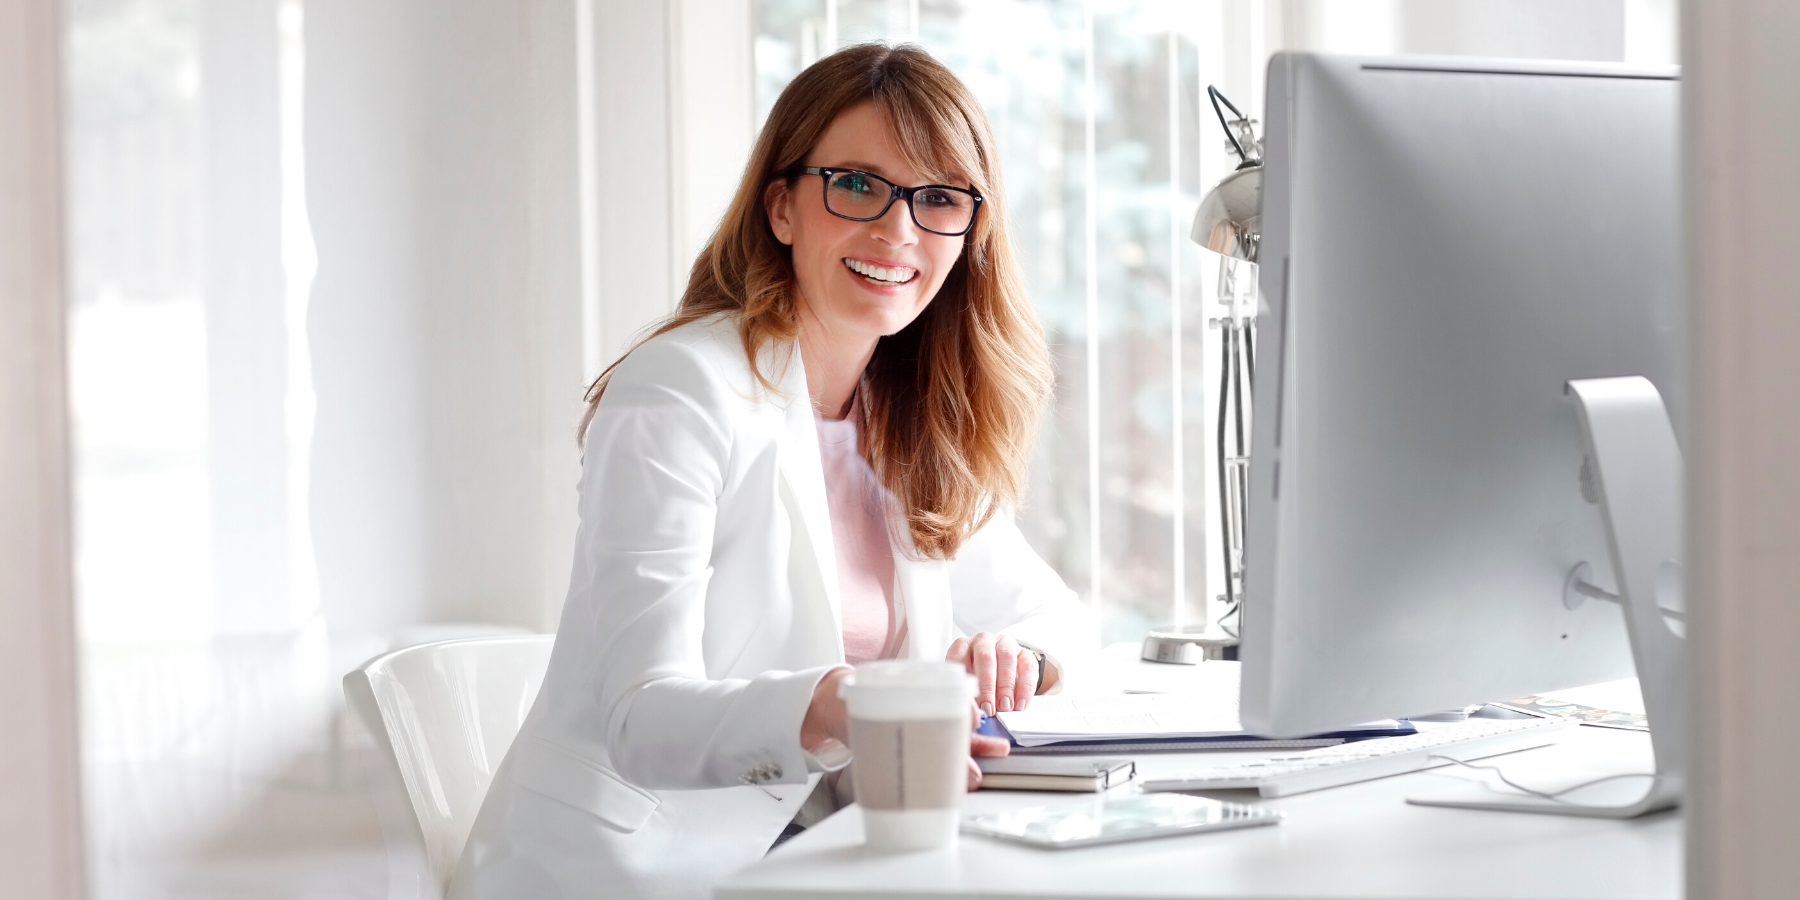 accounts_payable_business_woman_in_white_sittiing_at_computer_with_coffee